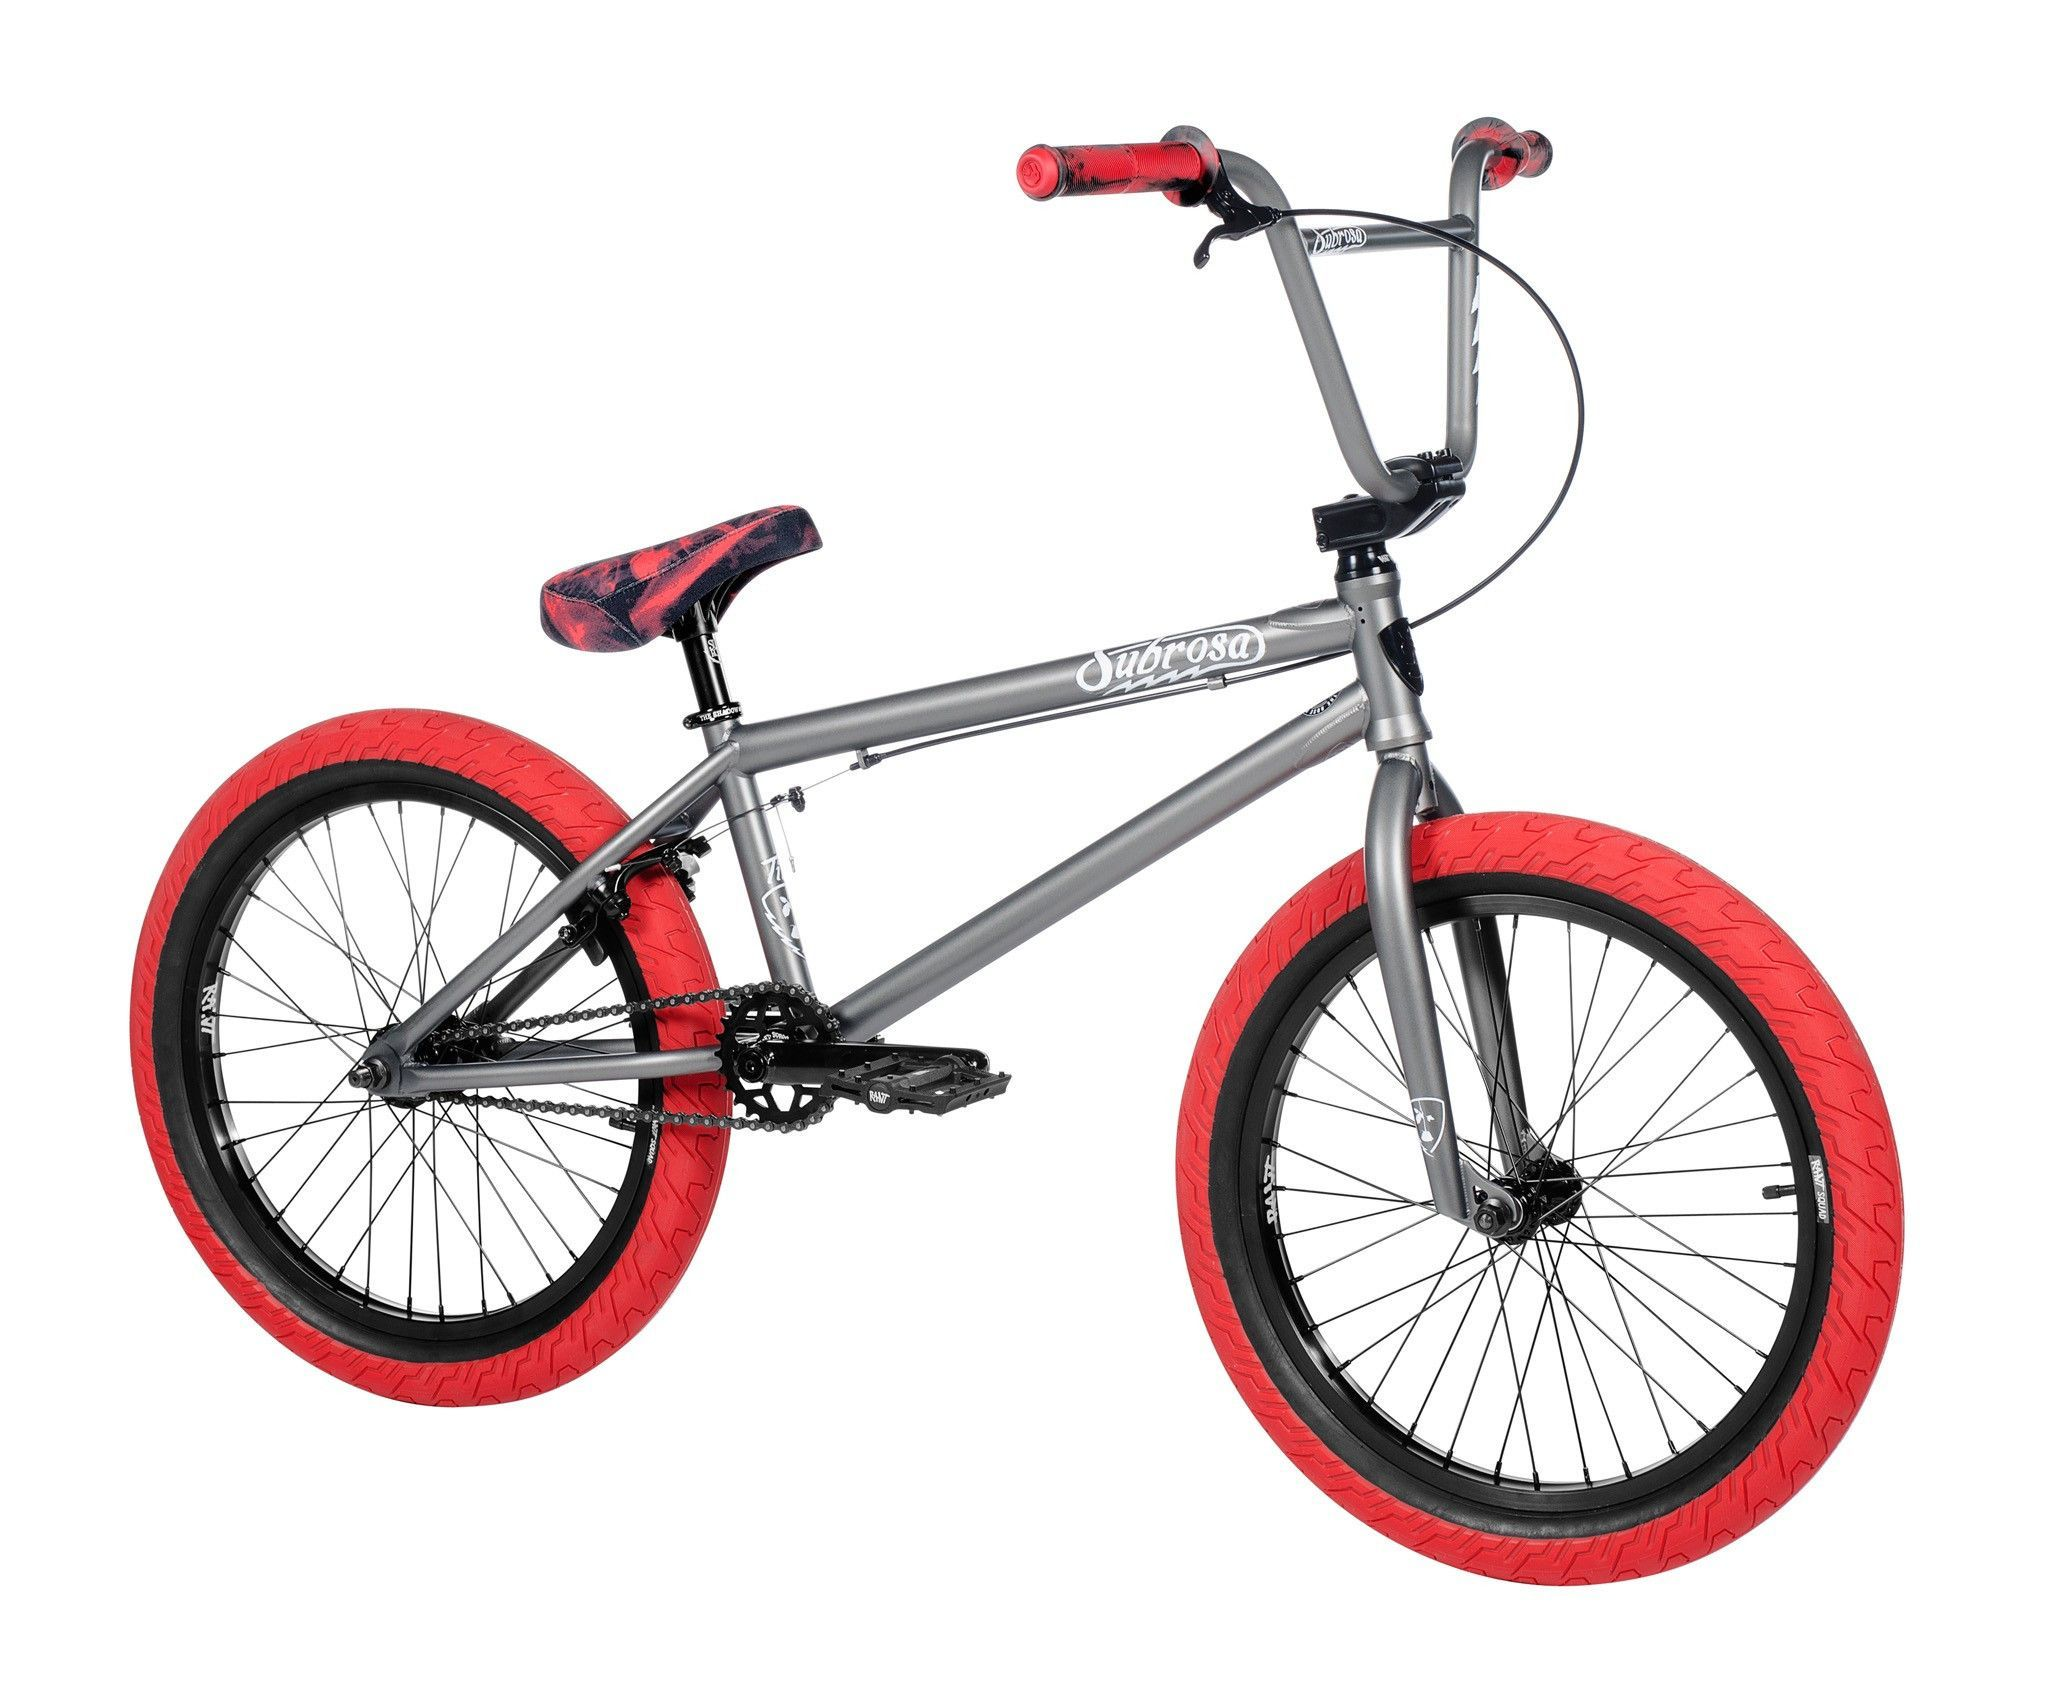 This awesome bike comes with these delivery options: FREE Shipping ...